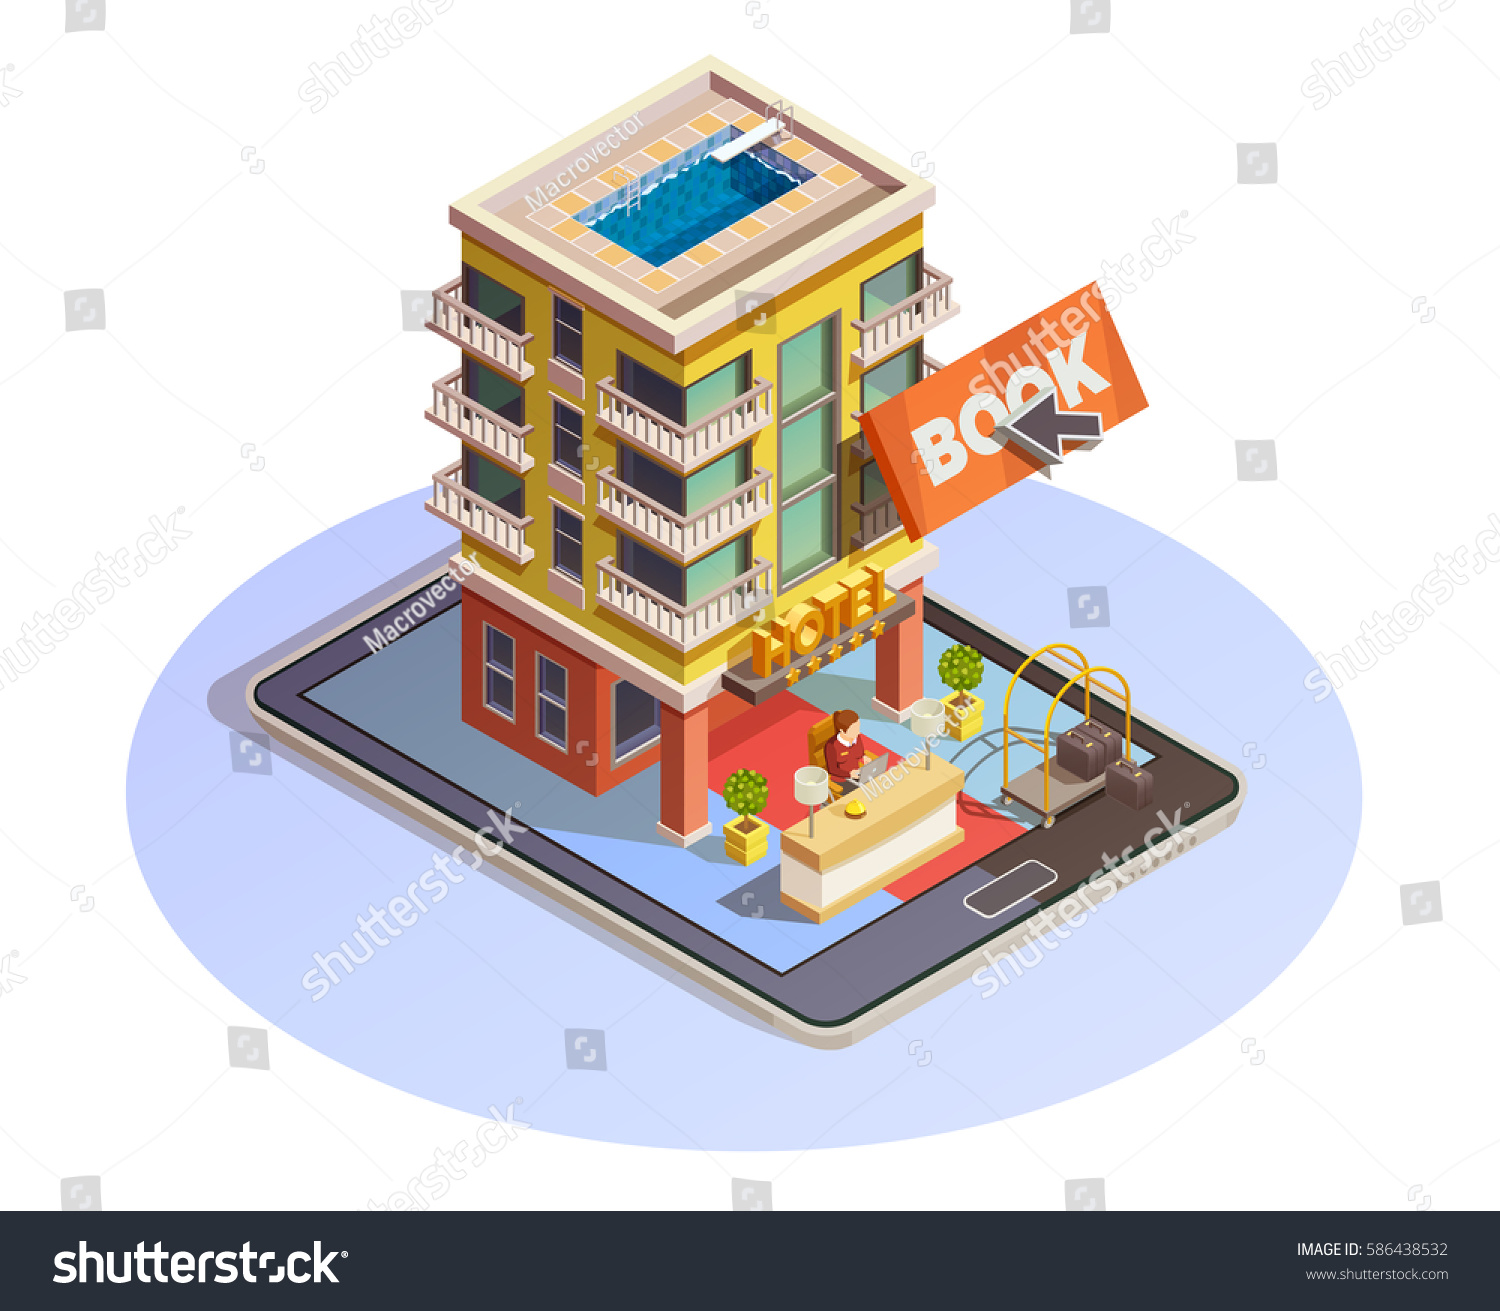 Online hotel booking isometric icon building stock vector for Tablet hotel booking